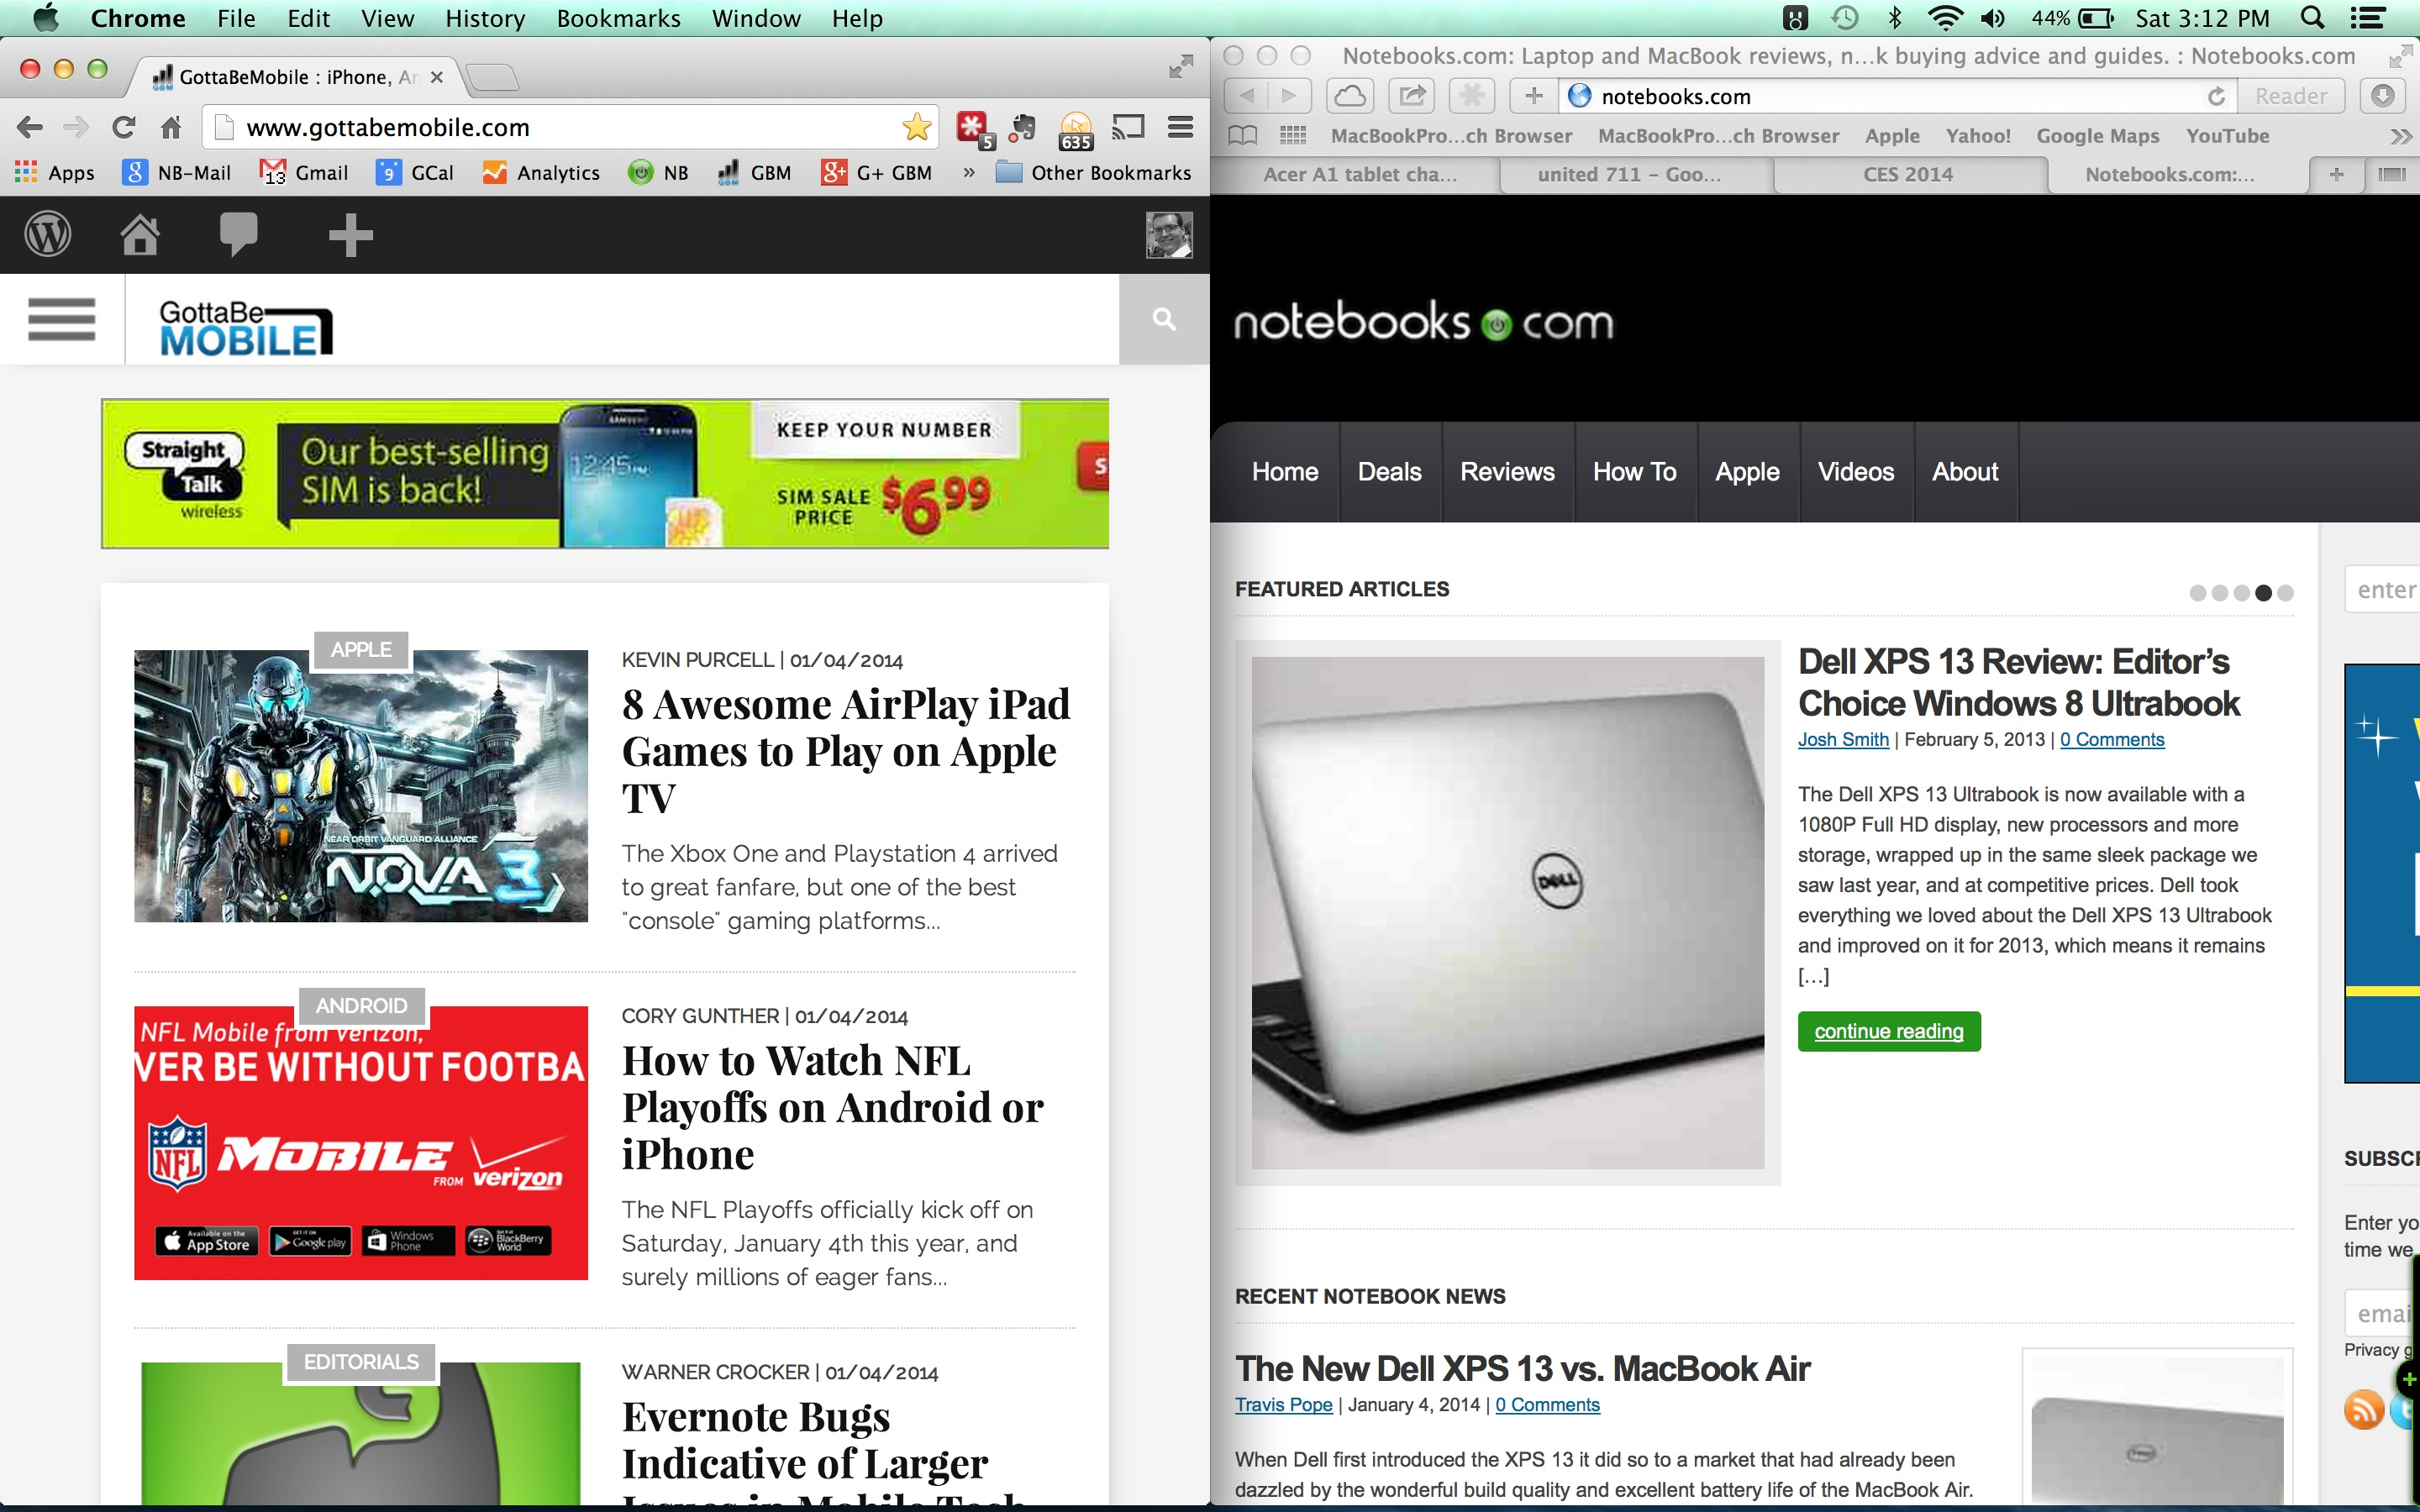 Snap windows in OS X Mavericks with HyperDock.